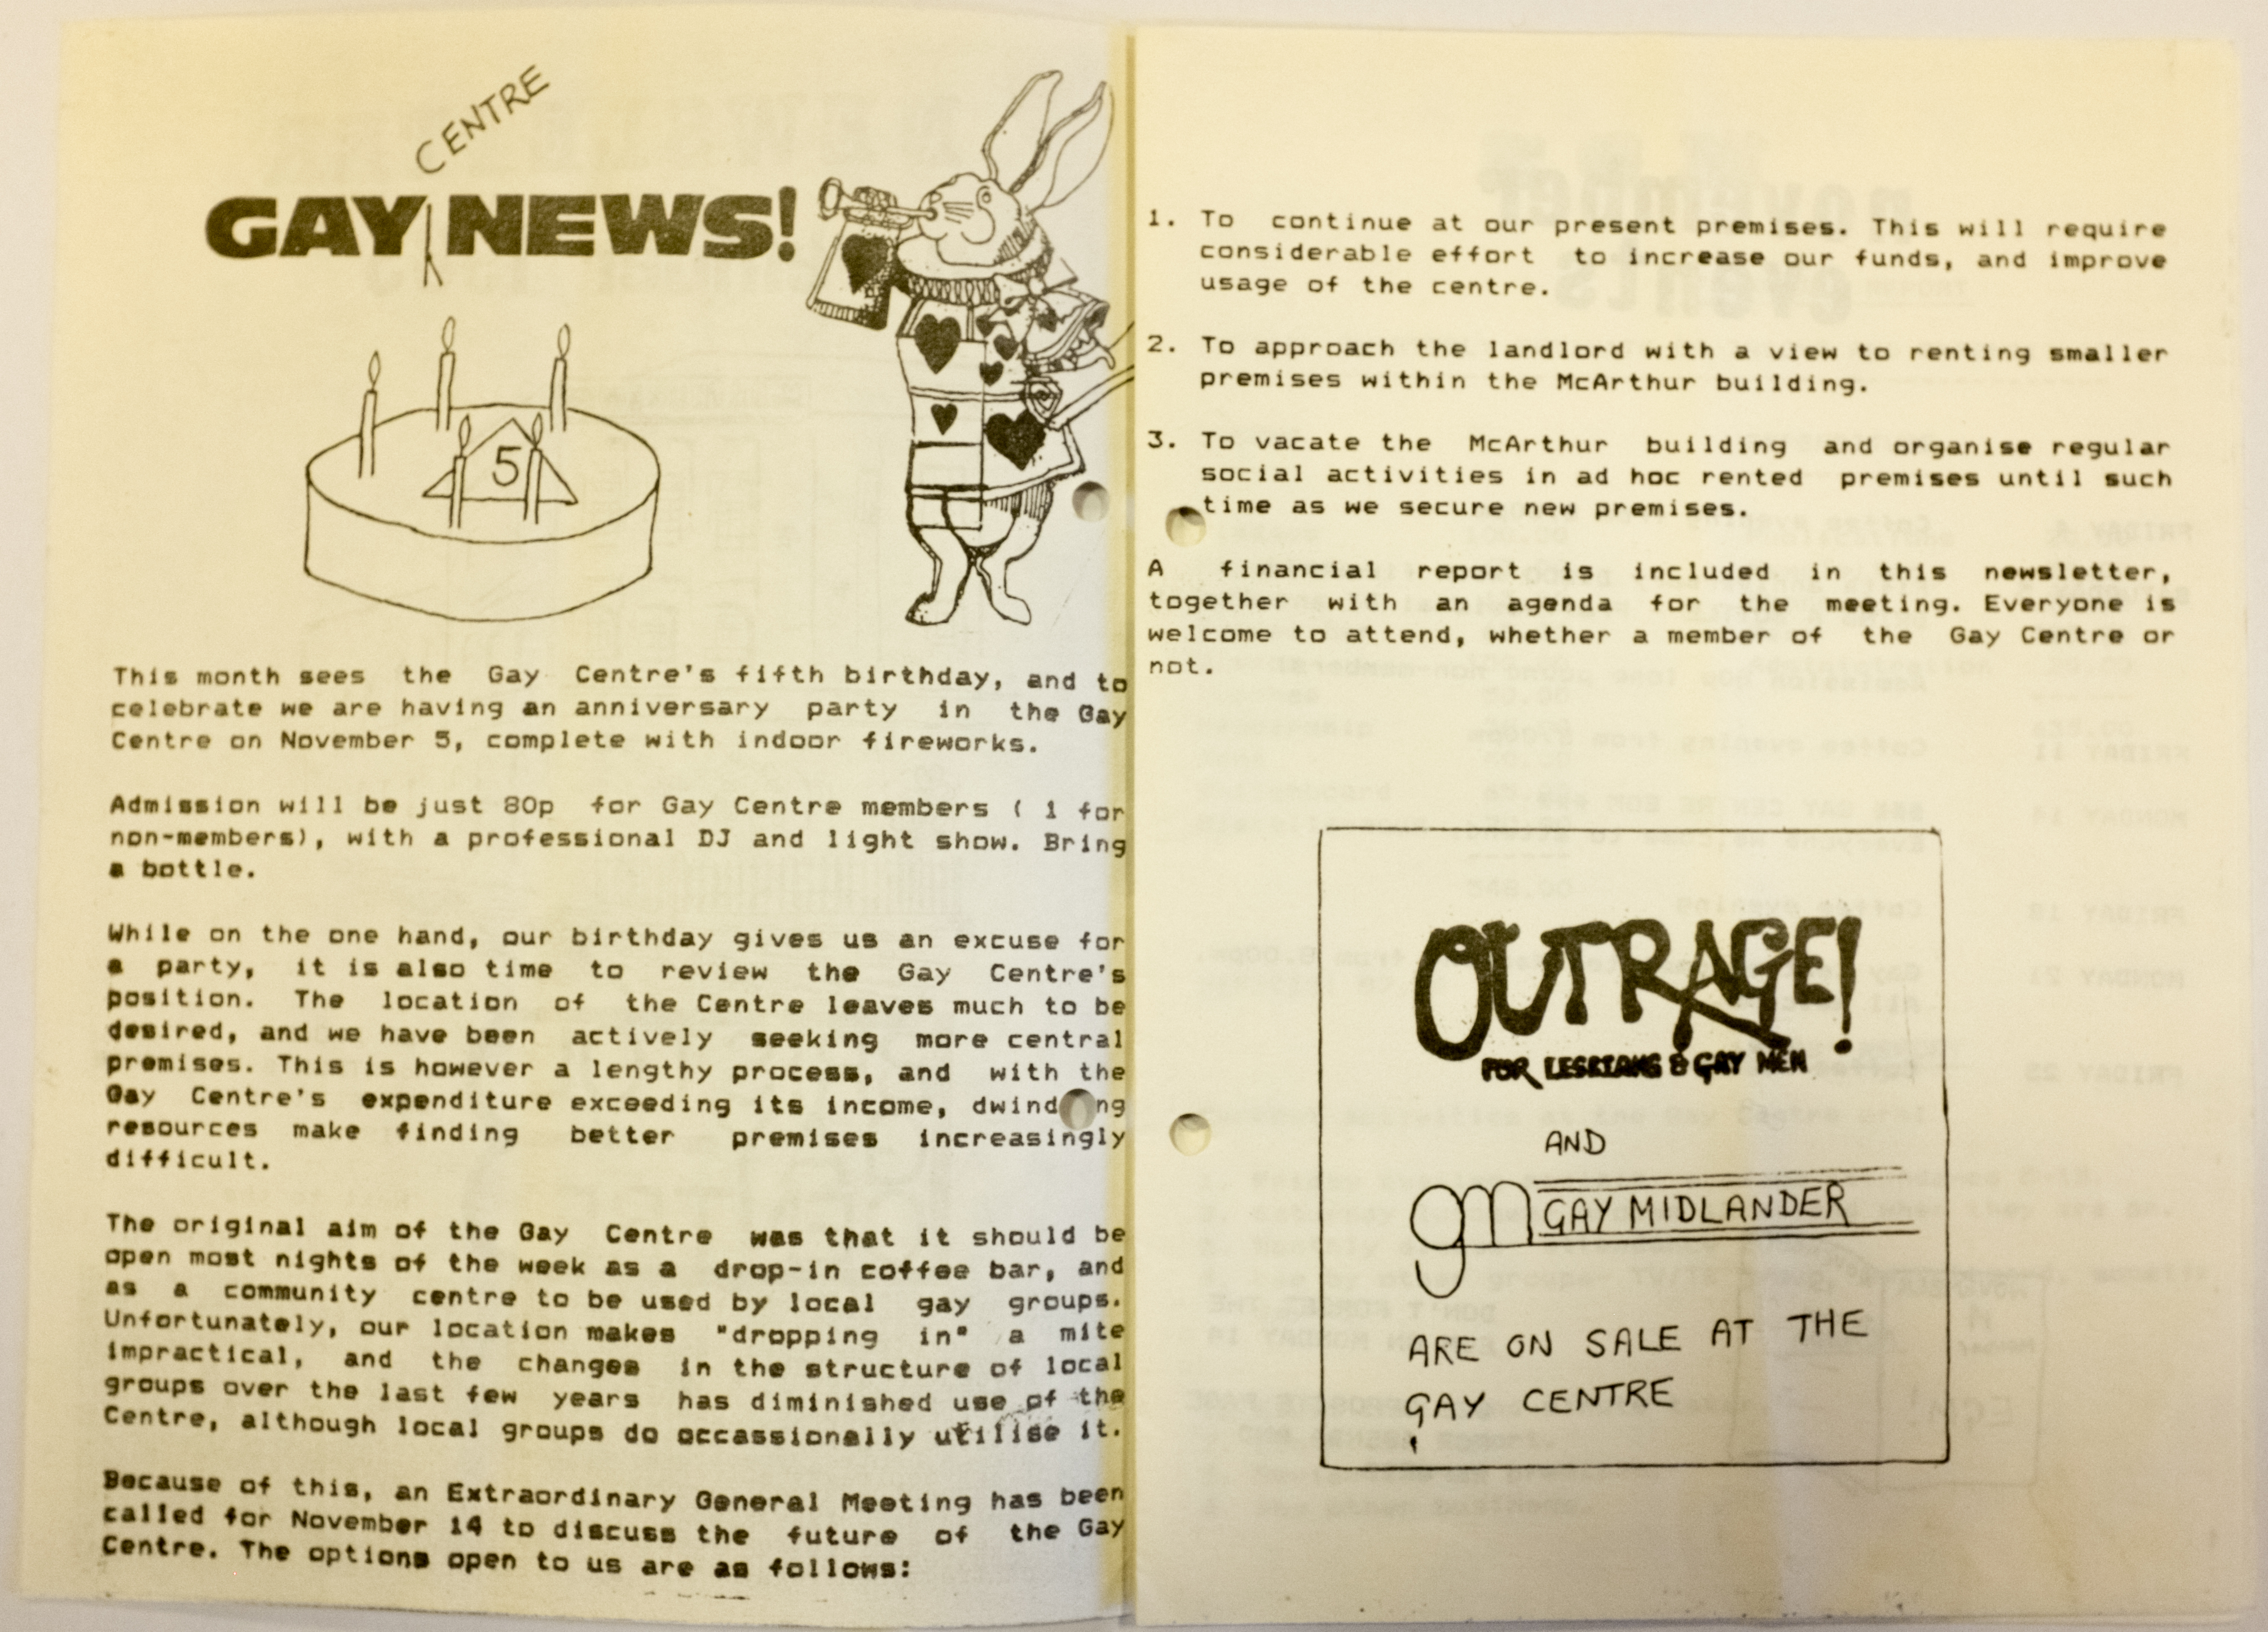 Line drawing of a rabbit blowing a trumpet next to a birthday cake. Text announces the centre's 5th birthday, highlights the inadequacy of the current Gay Centre venue and announces an Extraordinary General Meeting to discuss options for moving the centre.